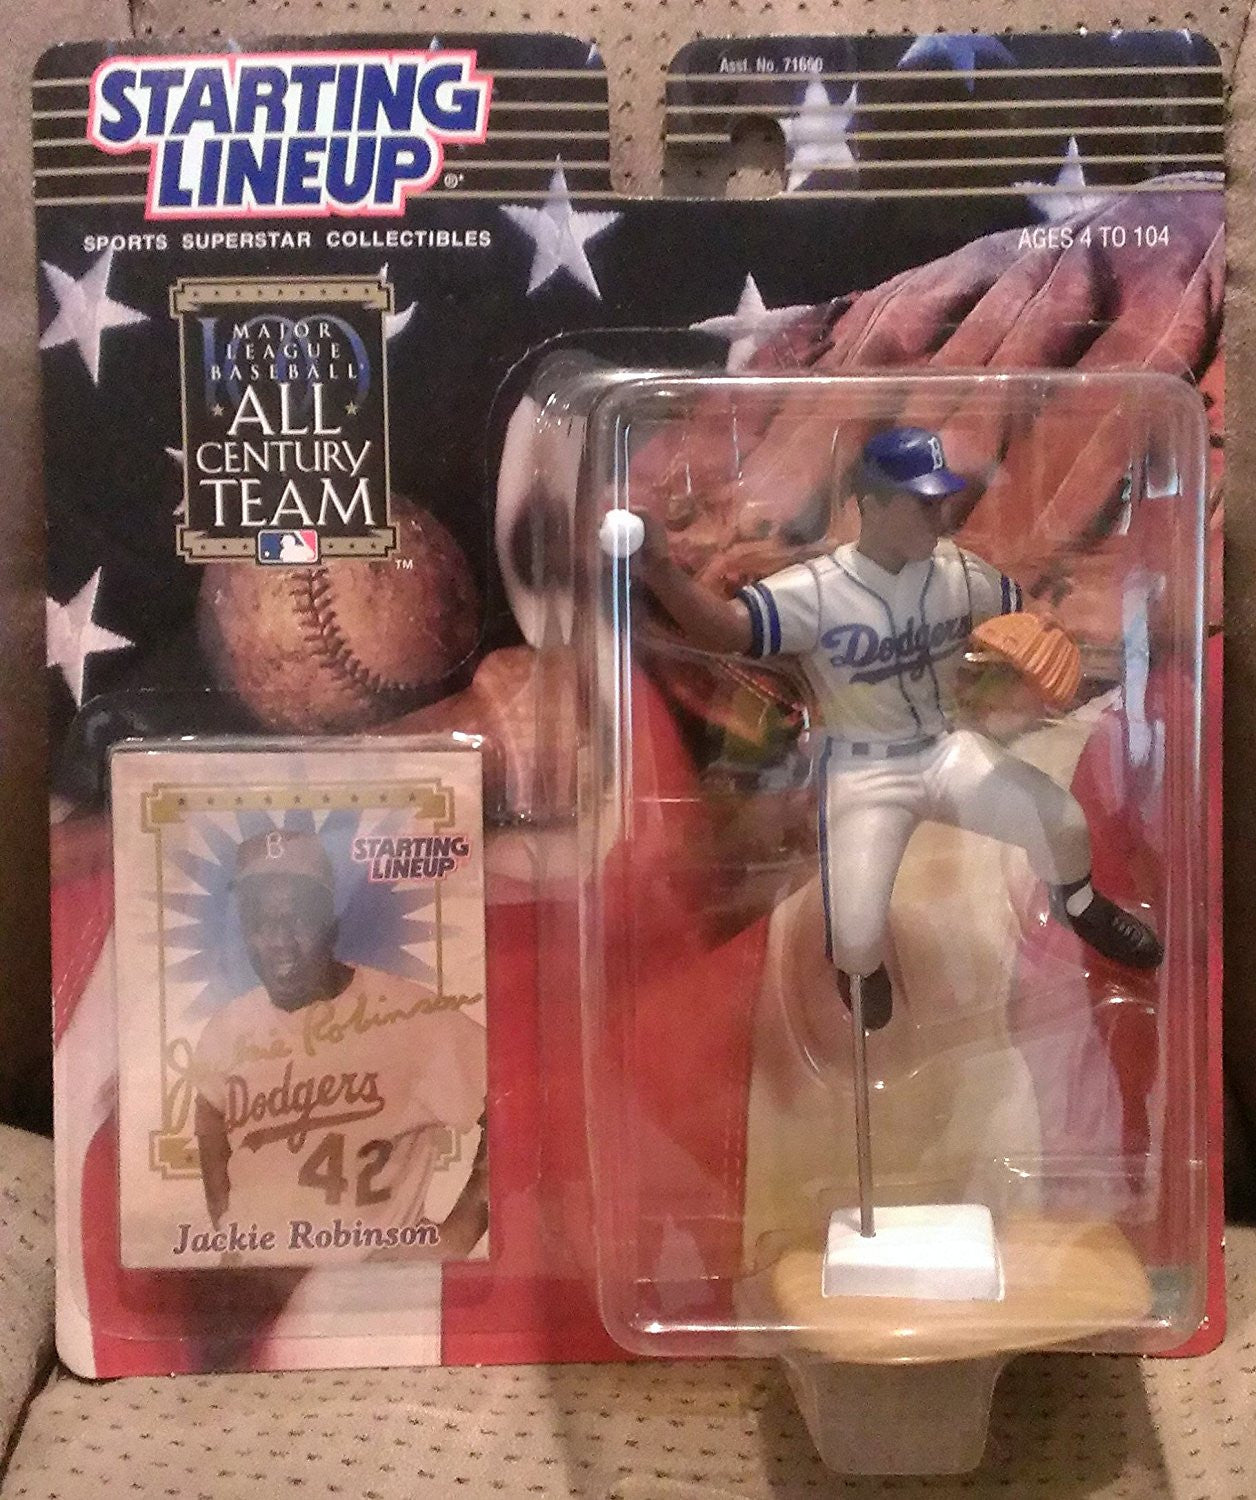 2000 MLB All Century Team Starting Lineup - Jackie Robinson - Brooklyn Dodgers